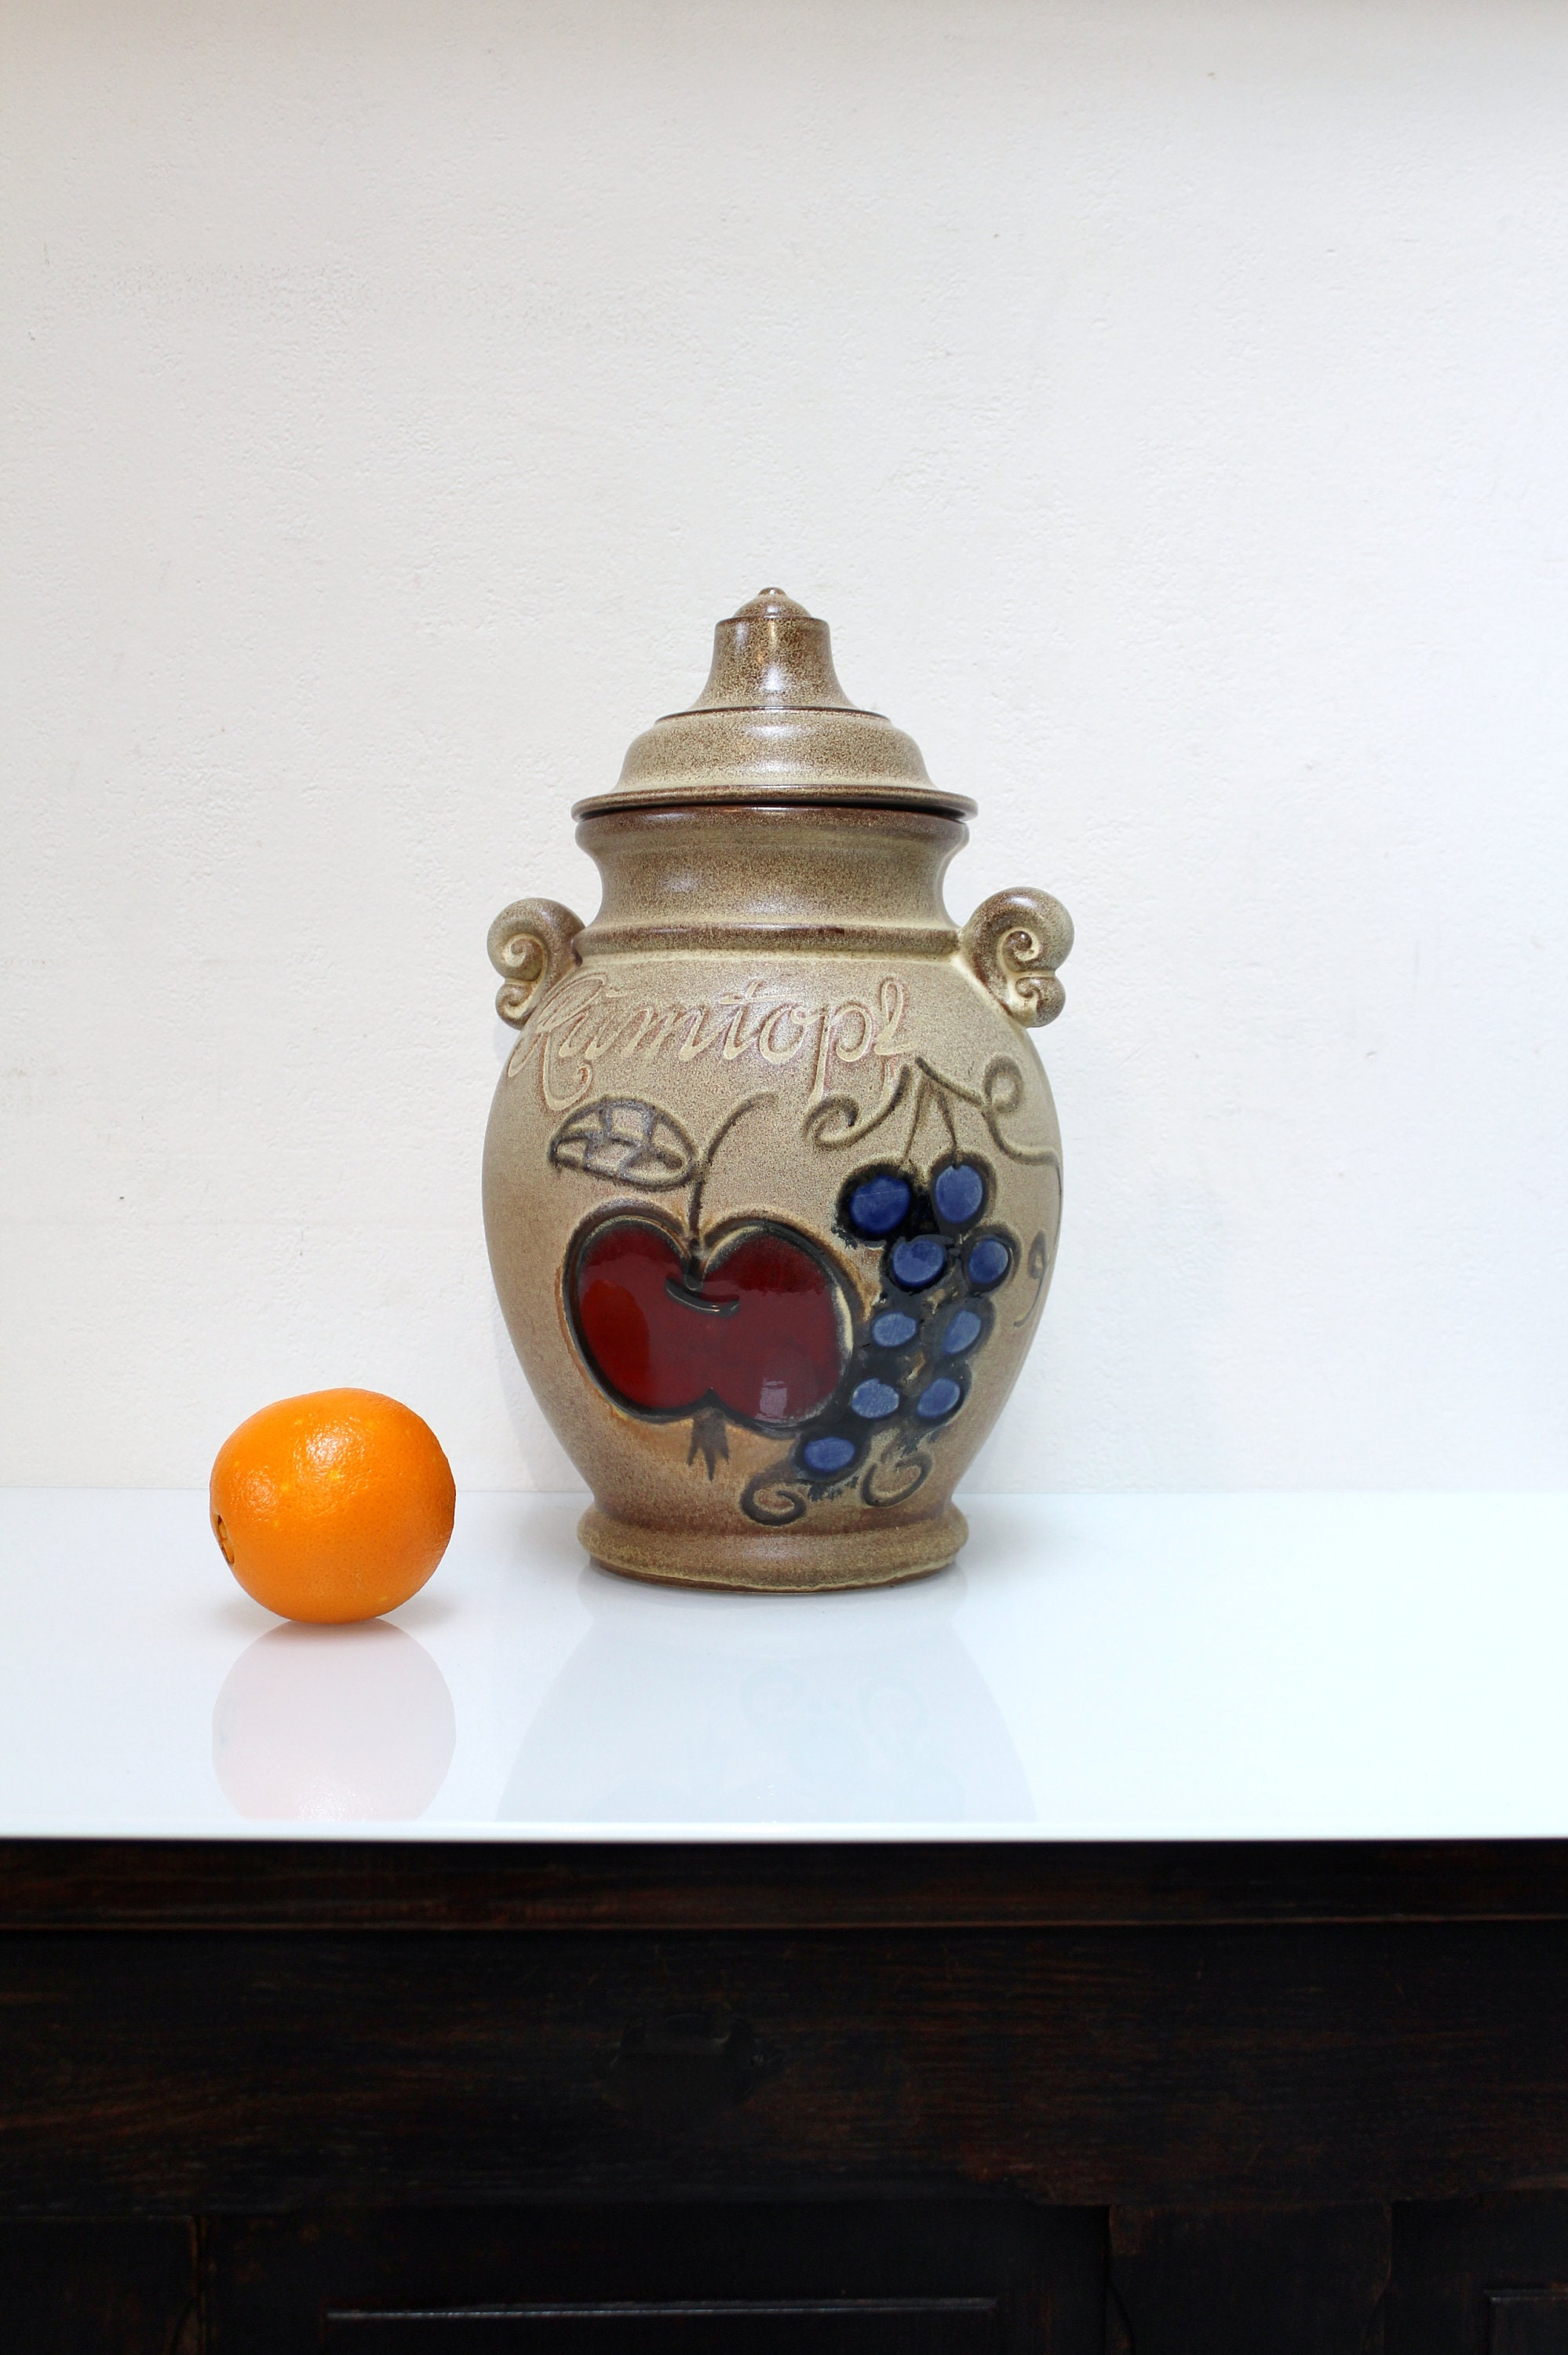 Vintage With ModernRetro Art 70's LidMid 36 Kitchen Century KeramikWest Jar 826 Rumtopf Storage PotteryCeramic By Scheurich Germany F3uc1JTlK